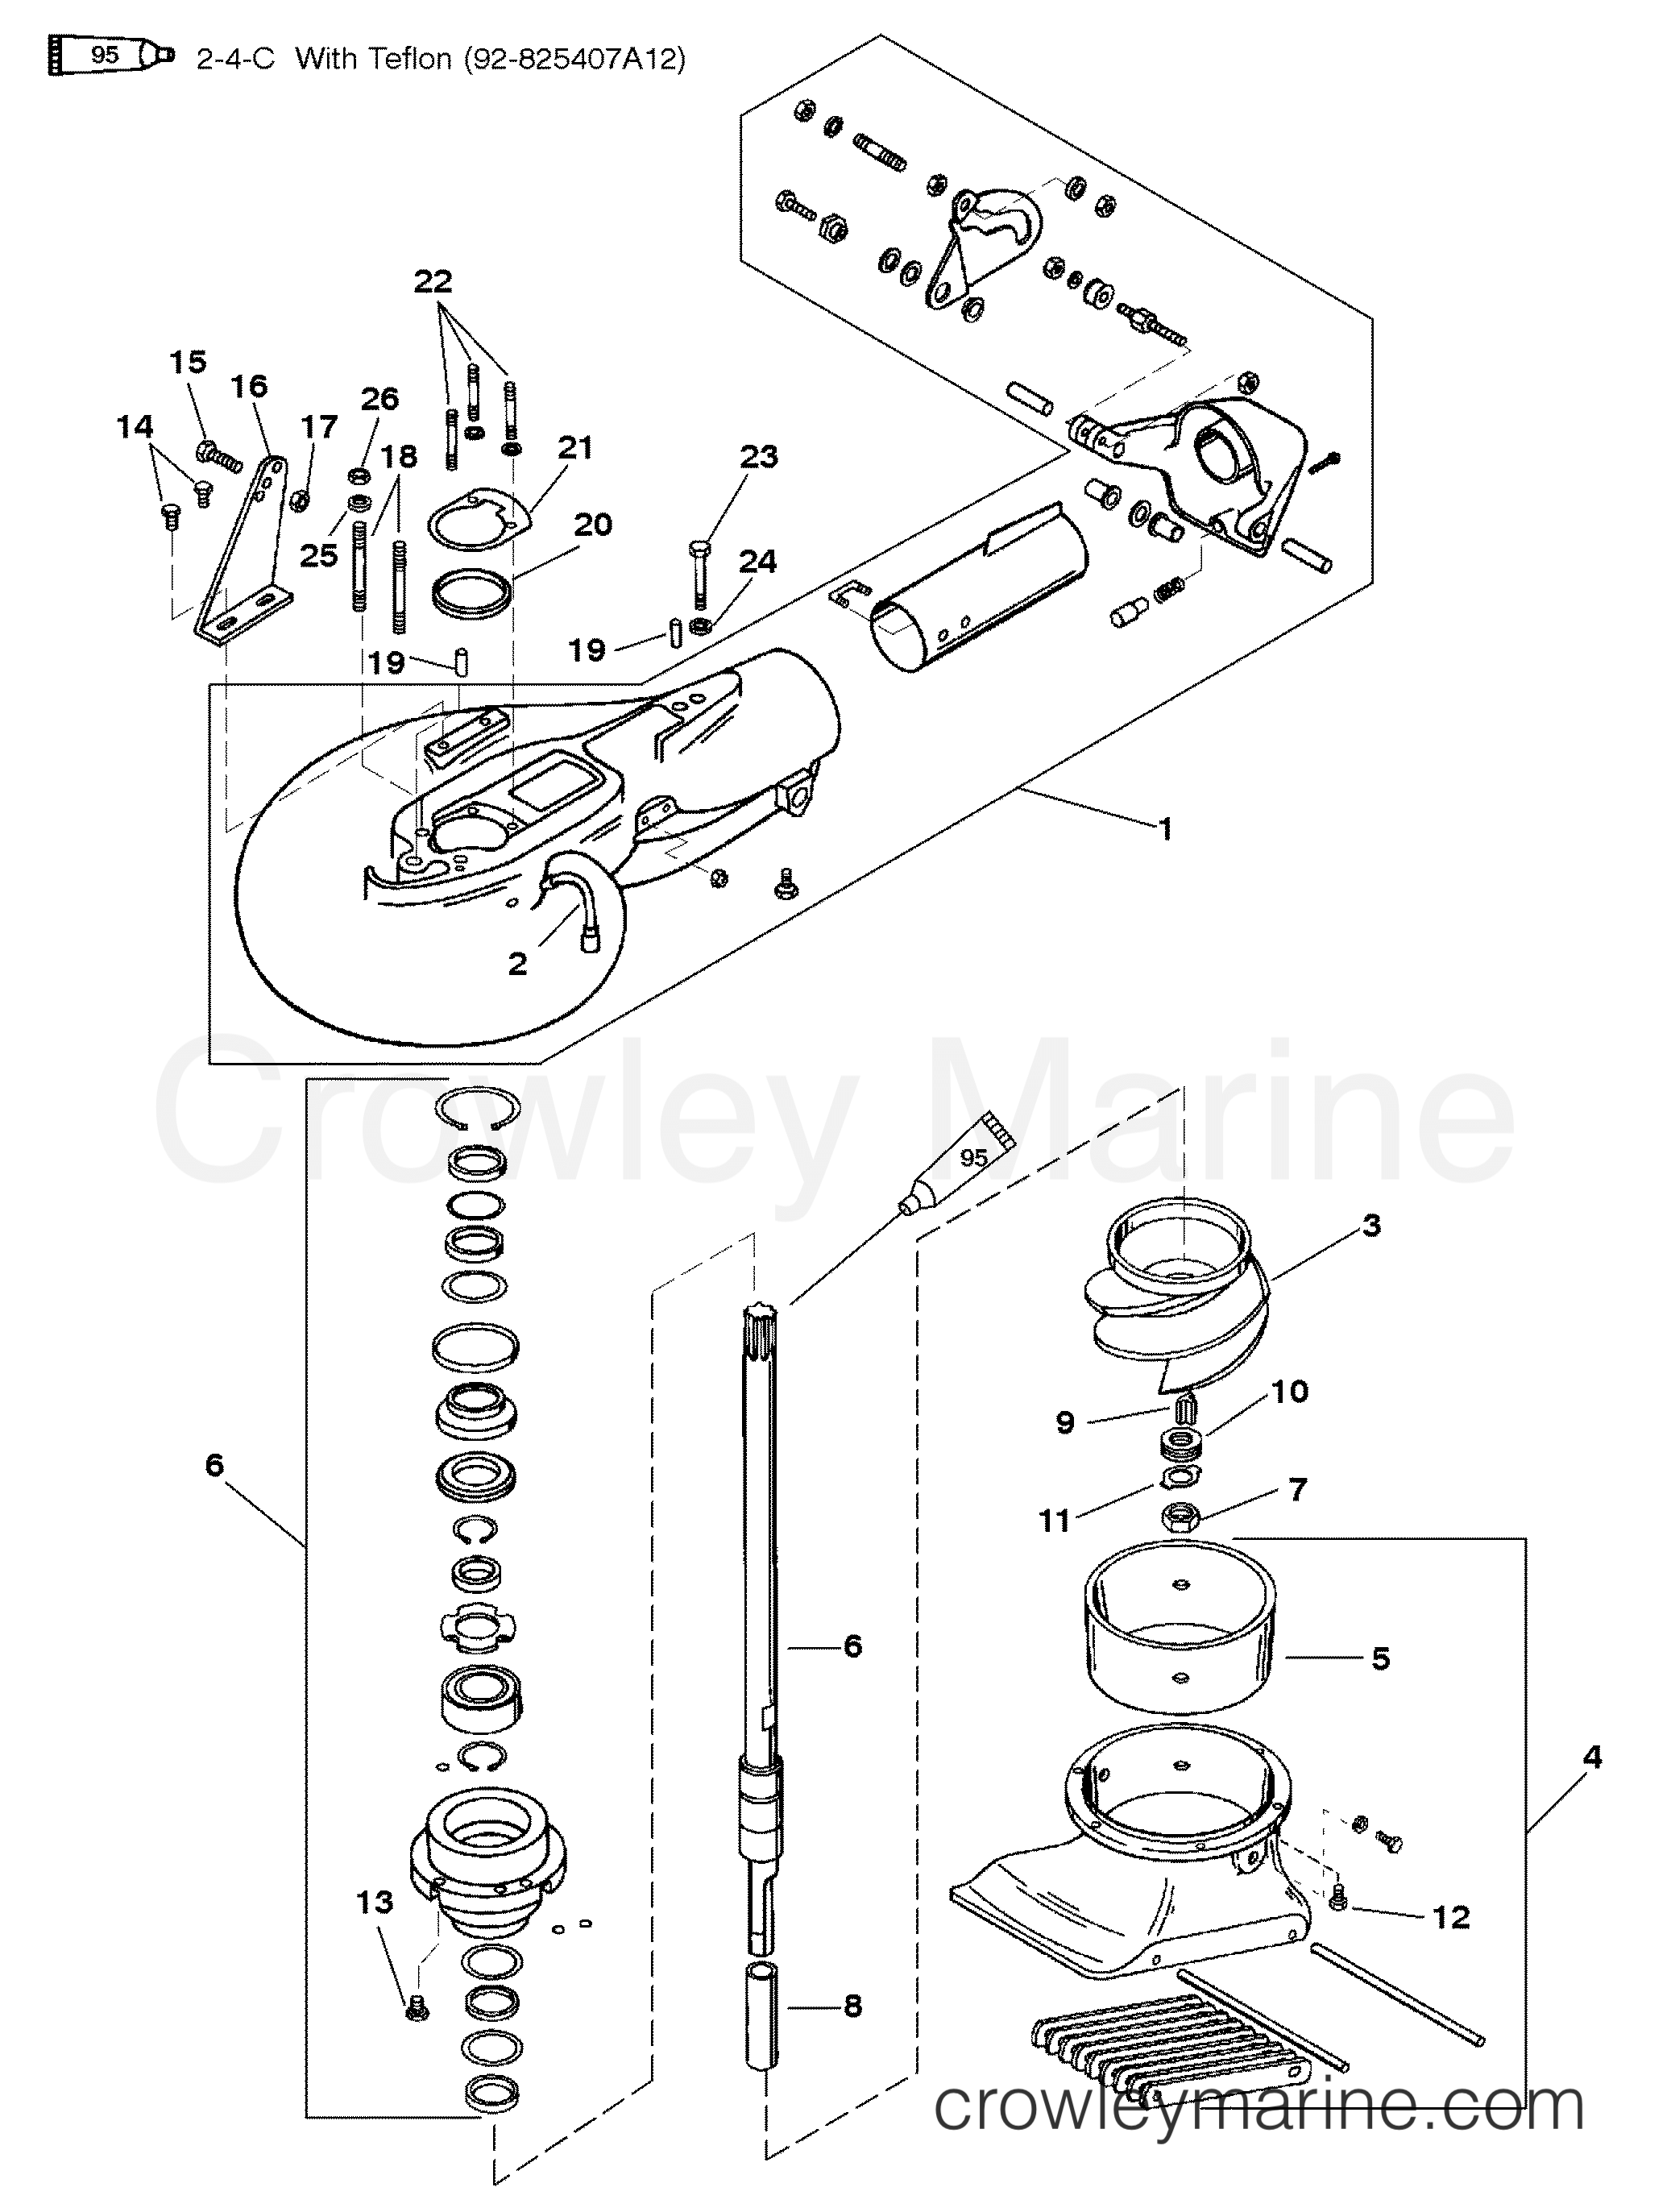 1996 Mercury Outboard 40 [ELO] - 1040312ST - JET PUMP ASSEMBLY section